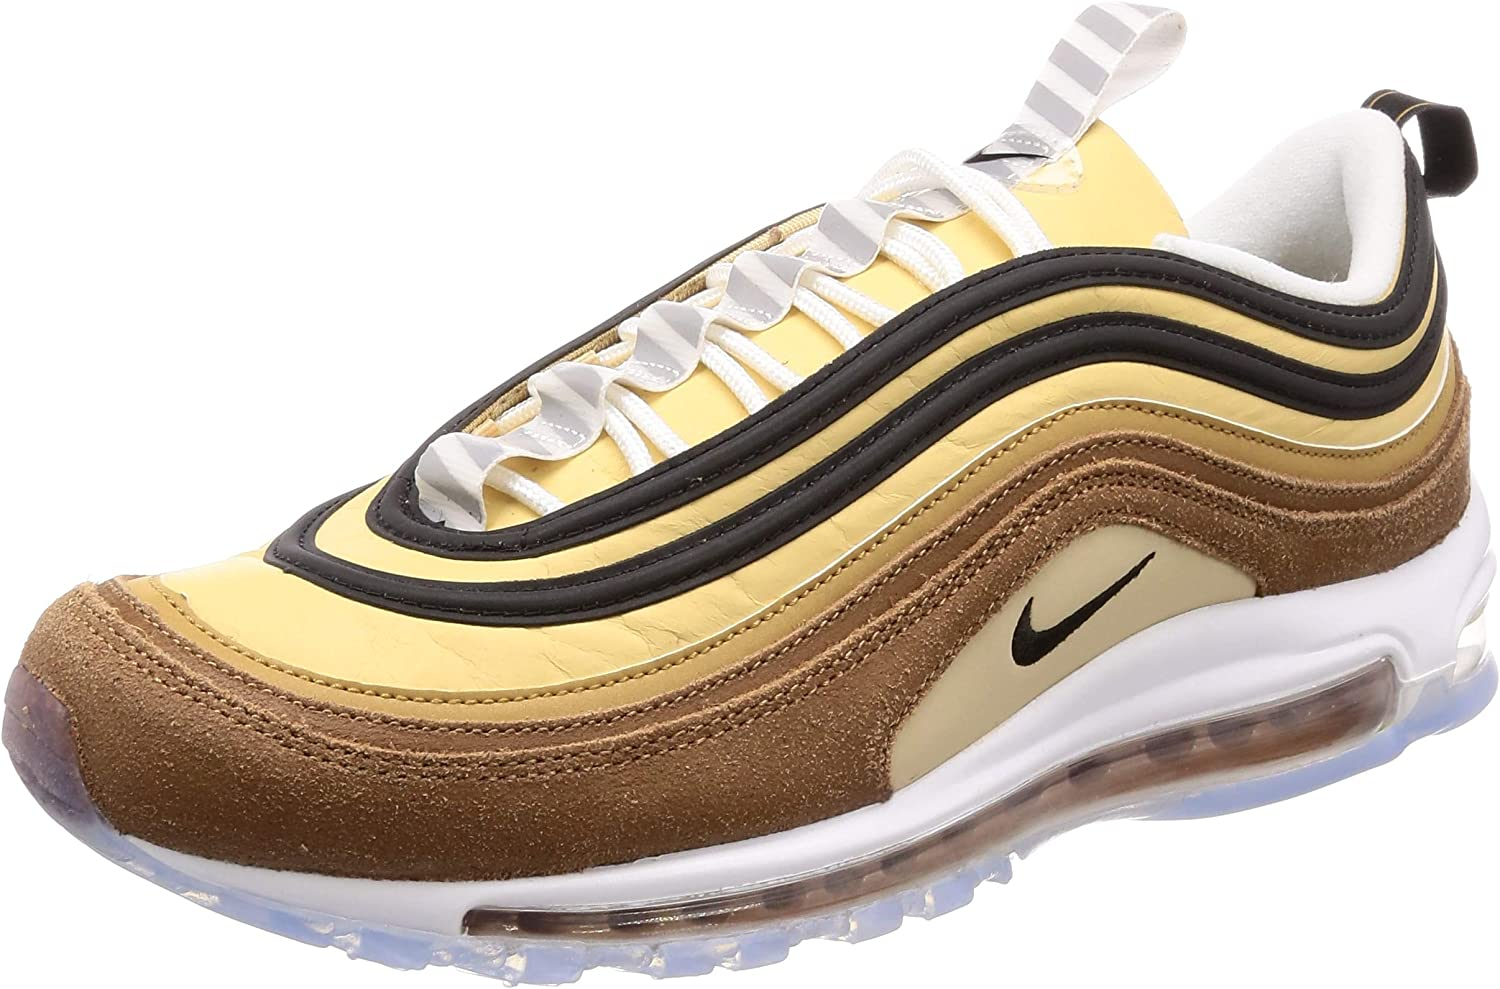 Nike Men's Air Max 97 shoes